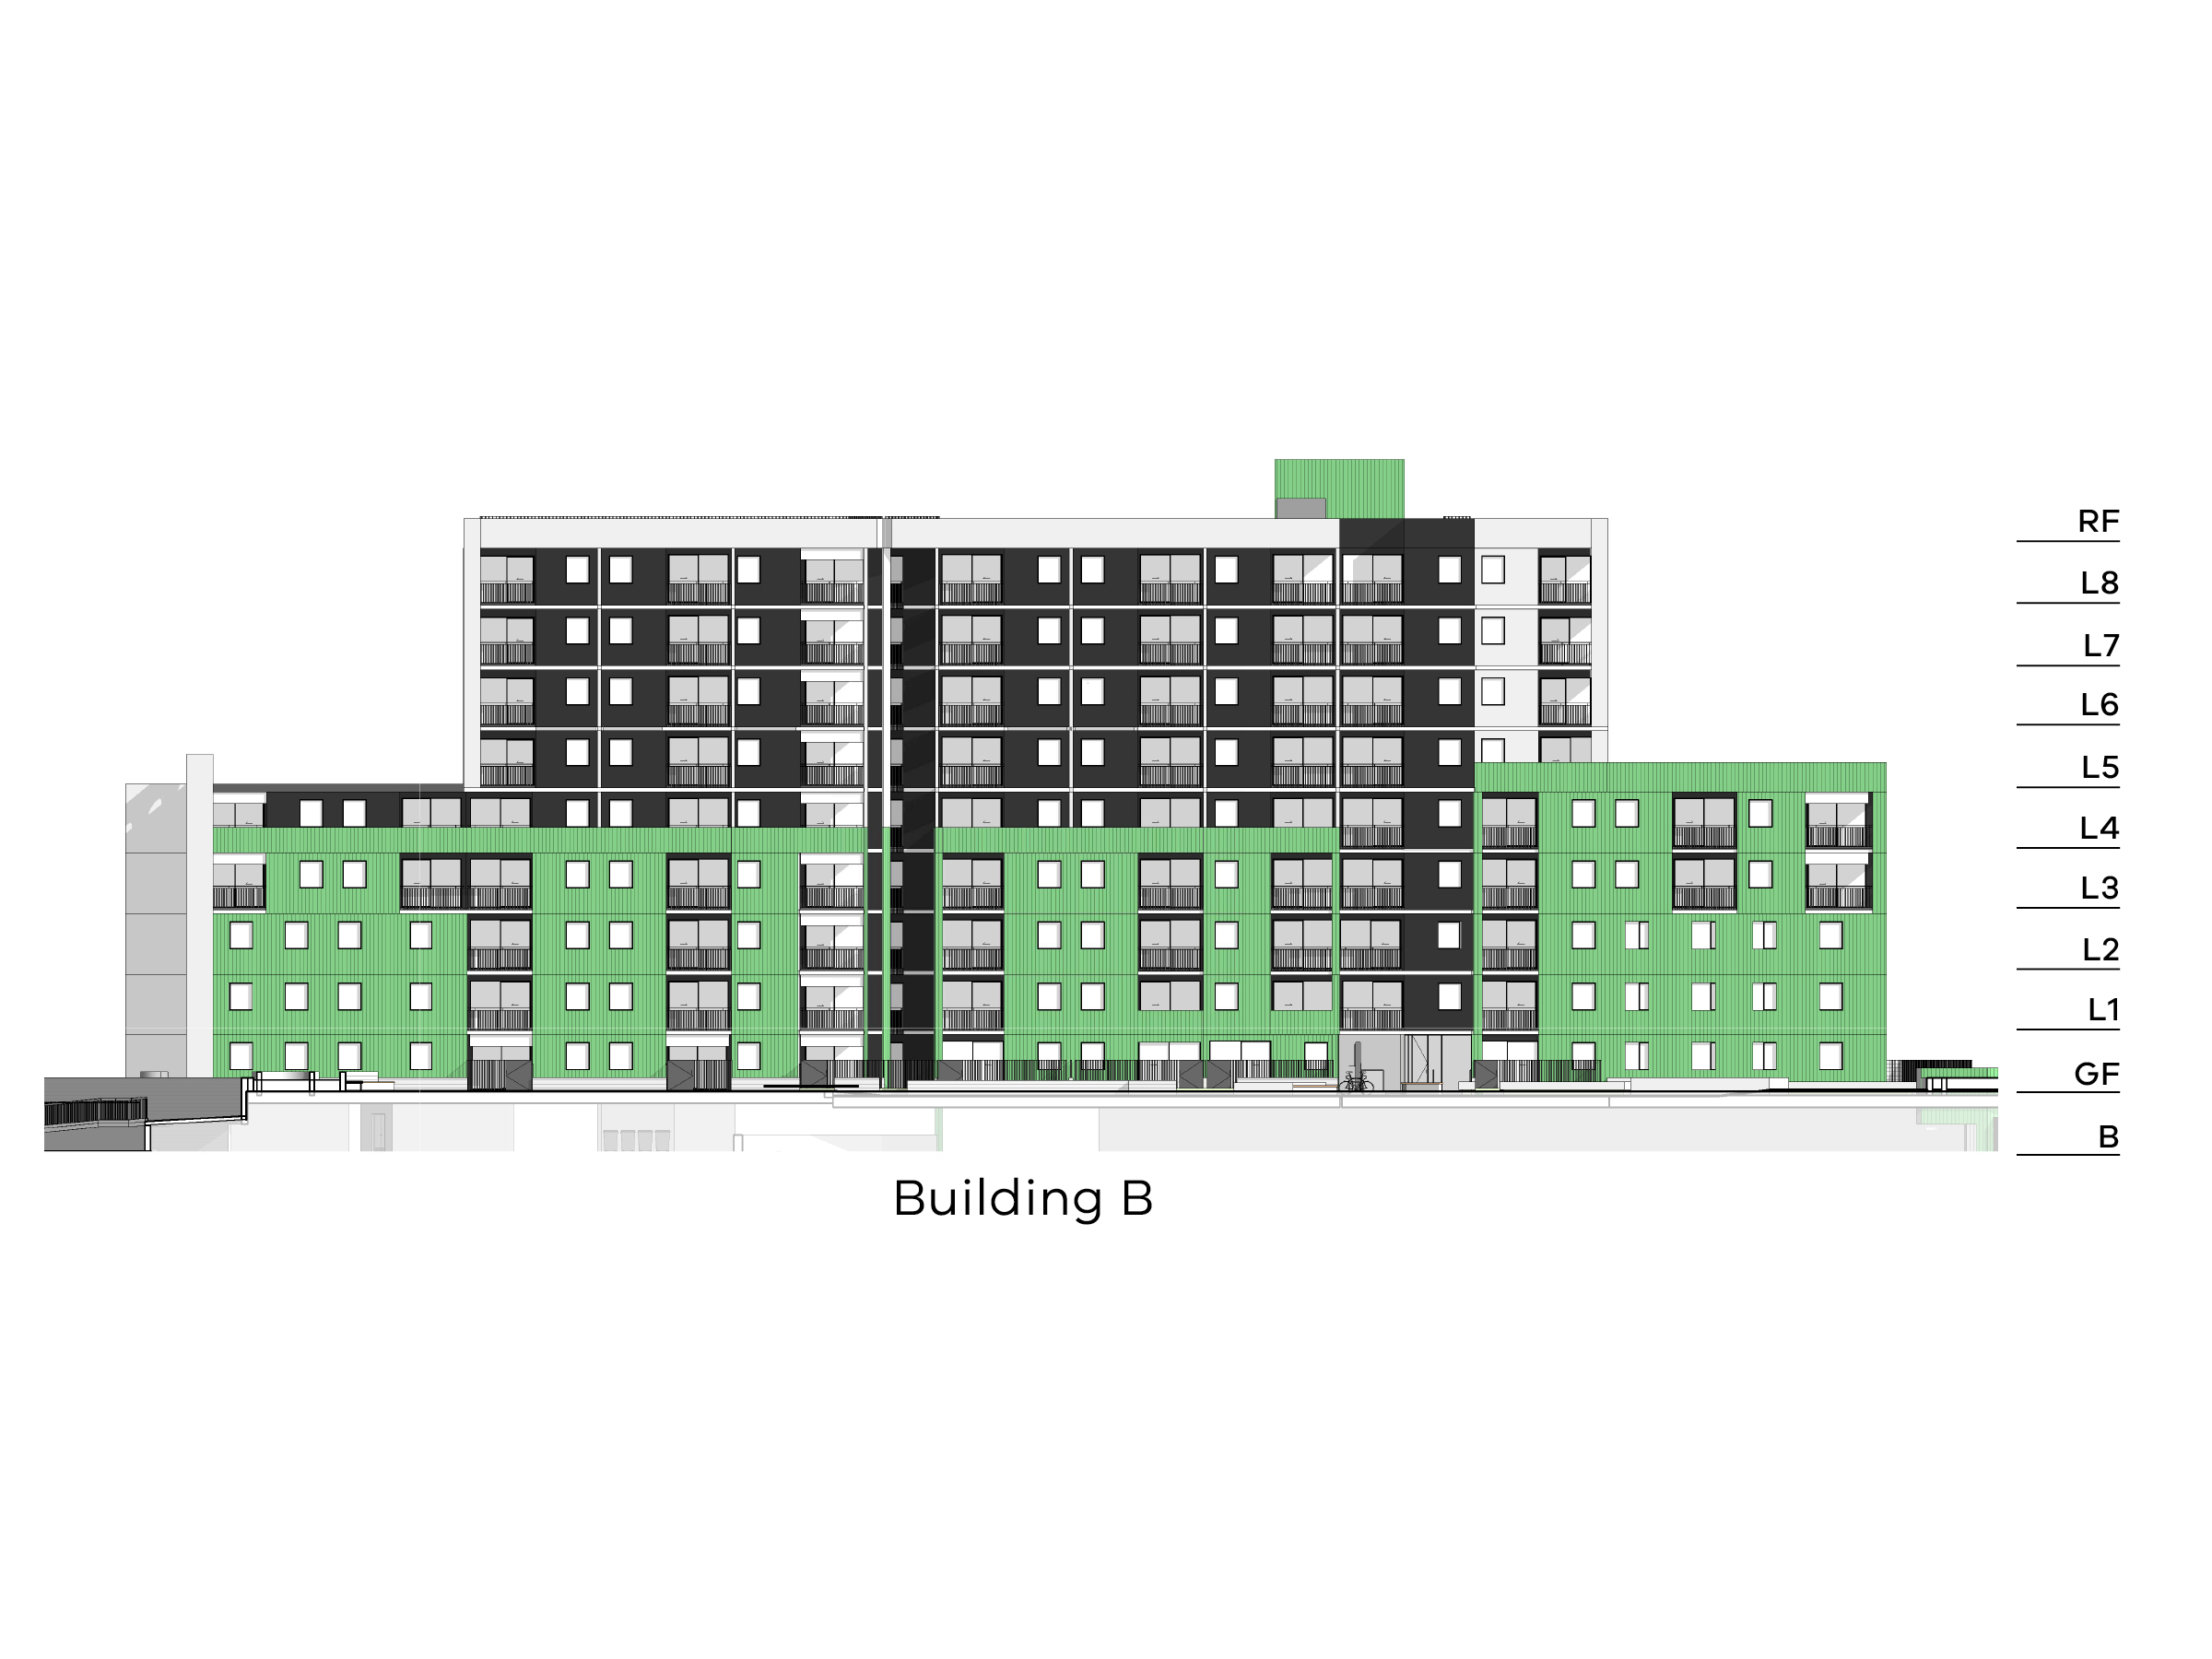 Diagram showing the height of building B as seen from the on-site walkyway looking towards New Holland Crescent. Building B has different heights. The side closest to Debneys Park has a basement, ground level, level 1-4 and a flat roof. The middle part of the building has a basement, ground floor, level 1-8 and a flat roof. The side closest to Hill Street has a basement, ground floor, level 1-4 and a flat roof.